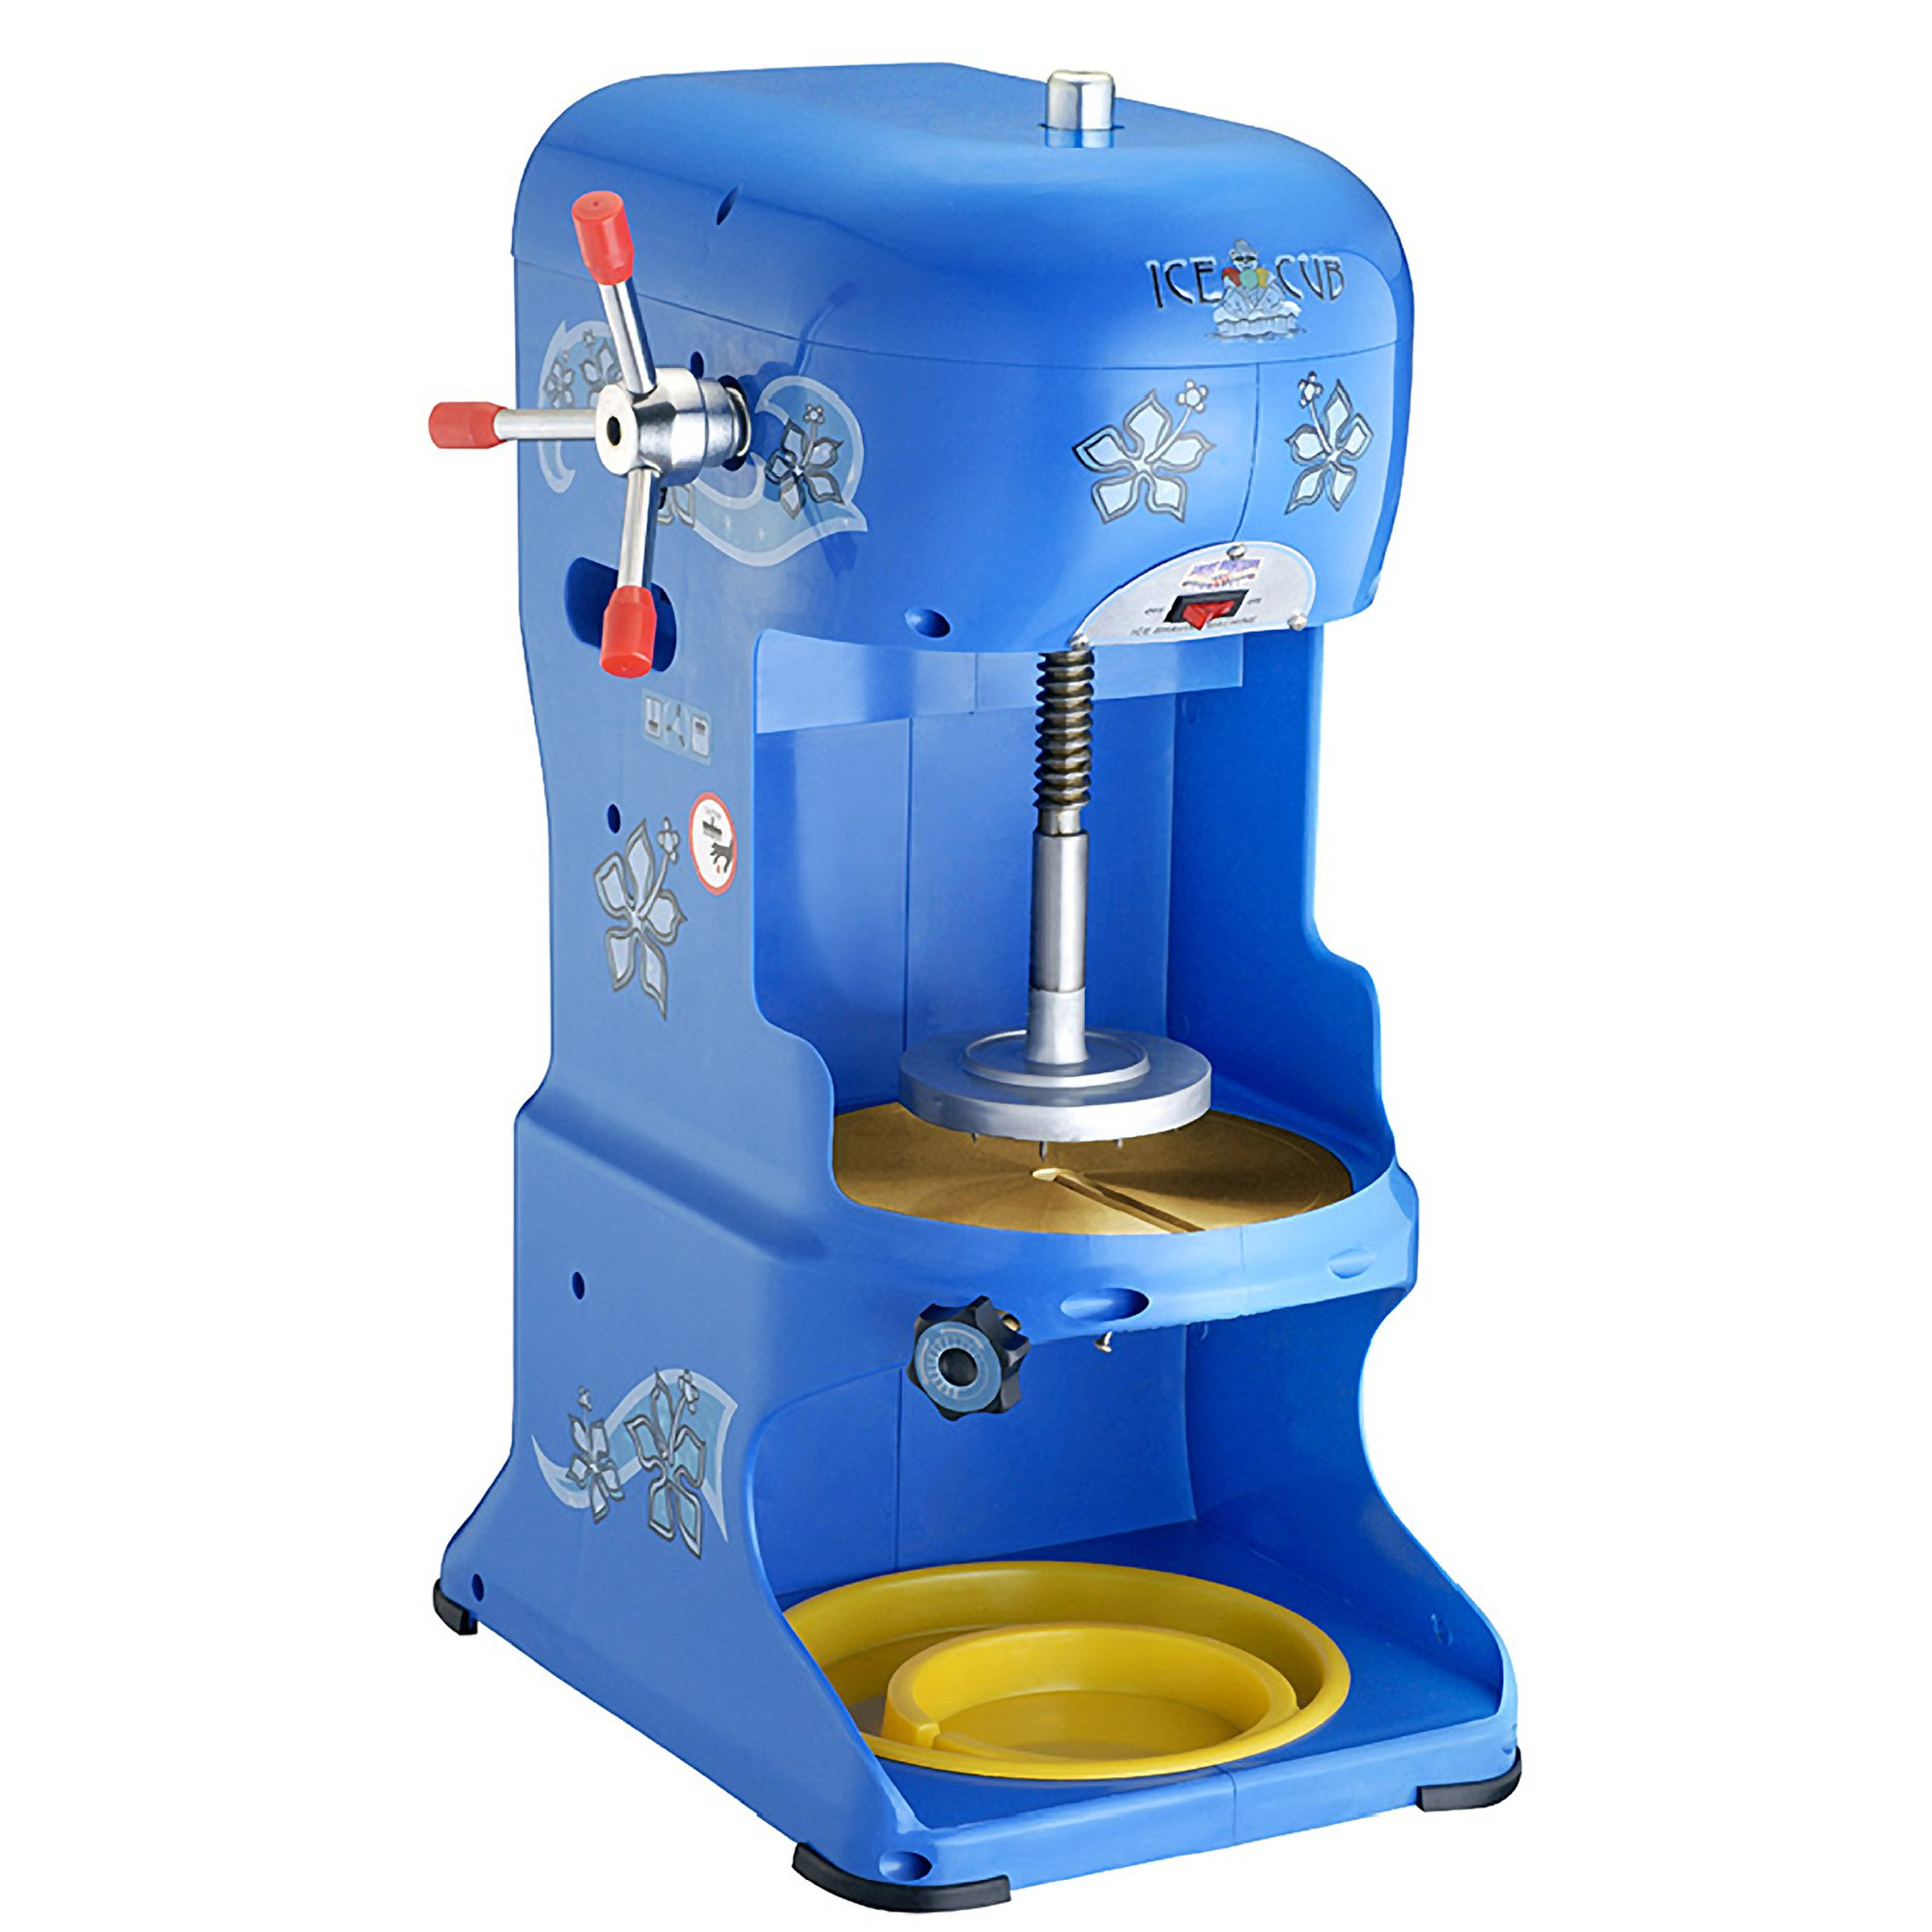 Great Northern Premium Quality Ice Cub Shaved Ice Machine Commercial Ice Shaver by Great Northern Popcorn Company